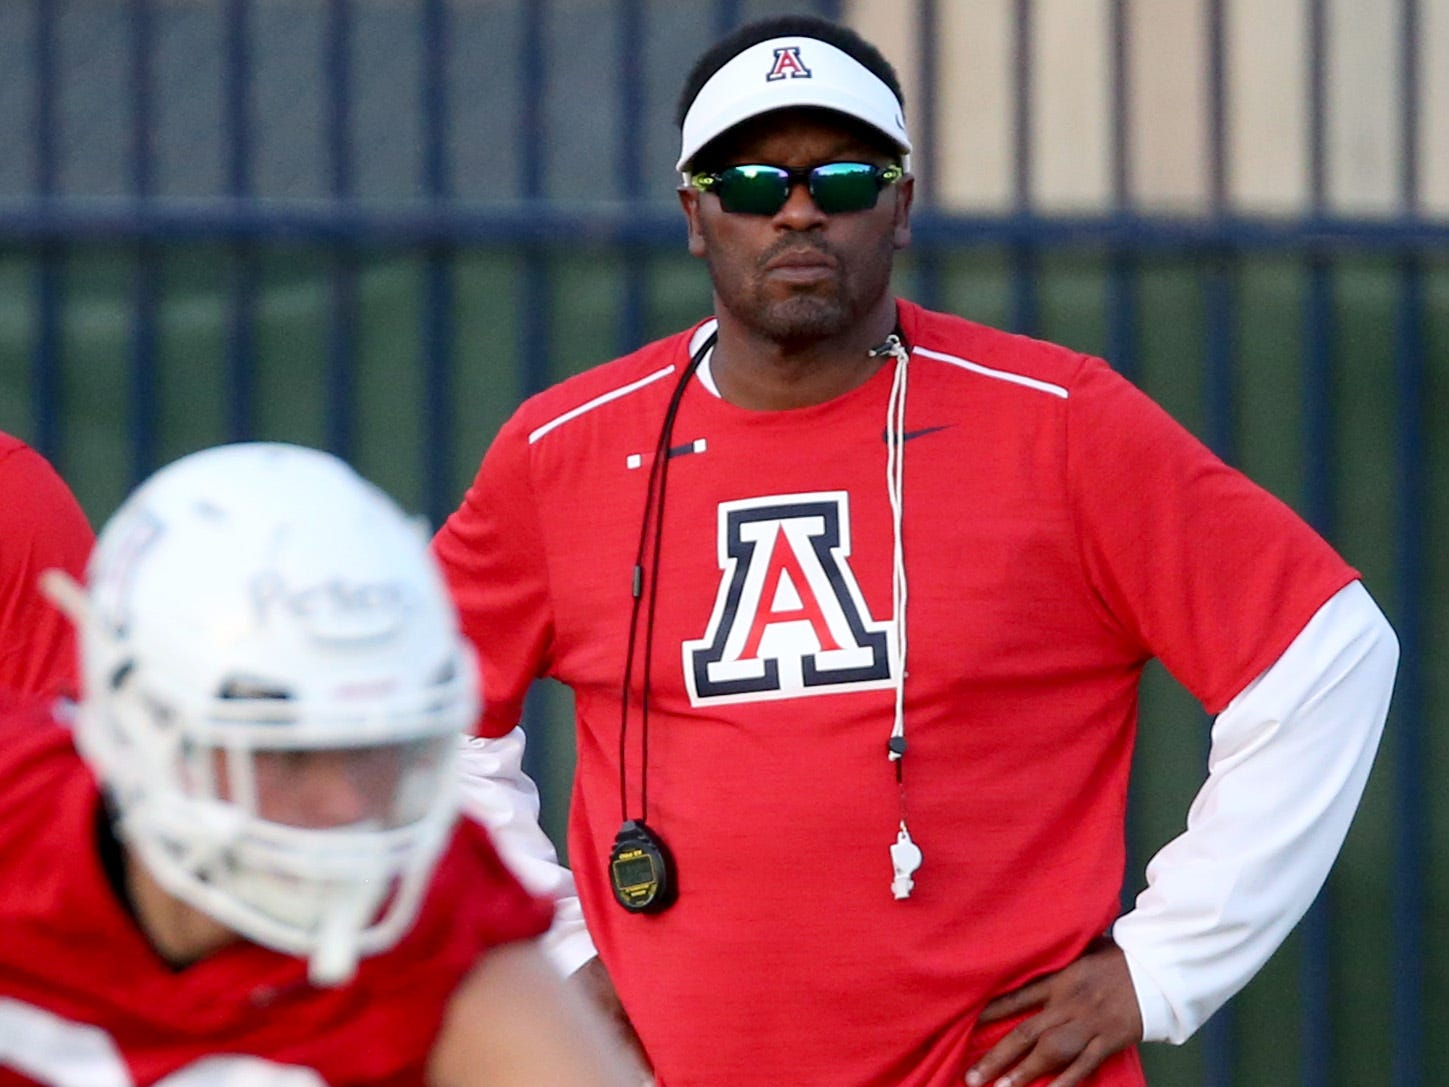 Head coach Kevin Sumlin watches the Wildcats run through drills on day two of pre-season practice for the University of Arizona, Friday, August 4, 2018, Tucson, Ariz.